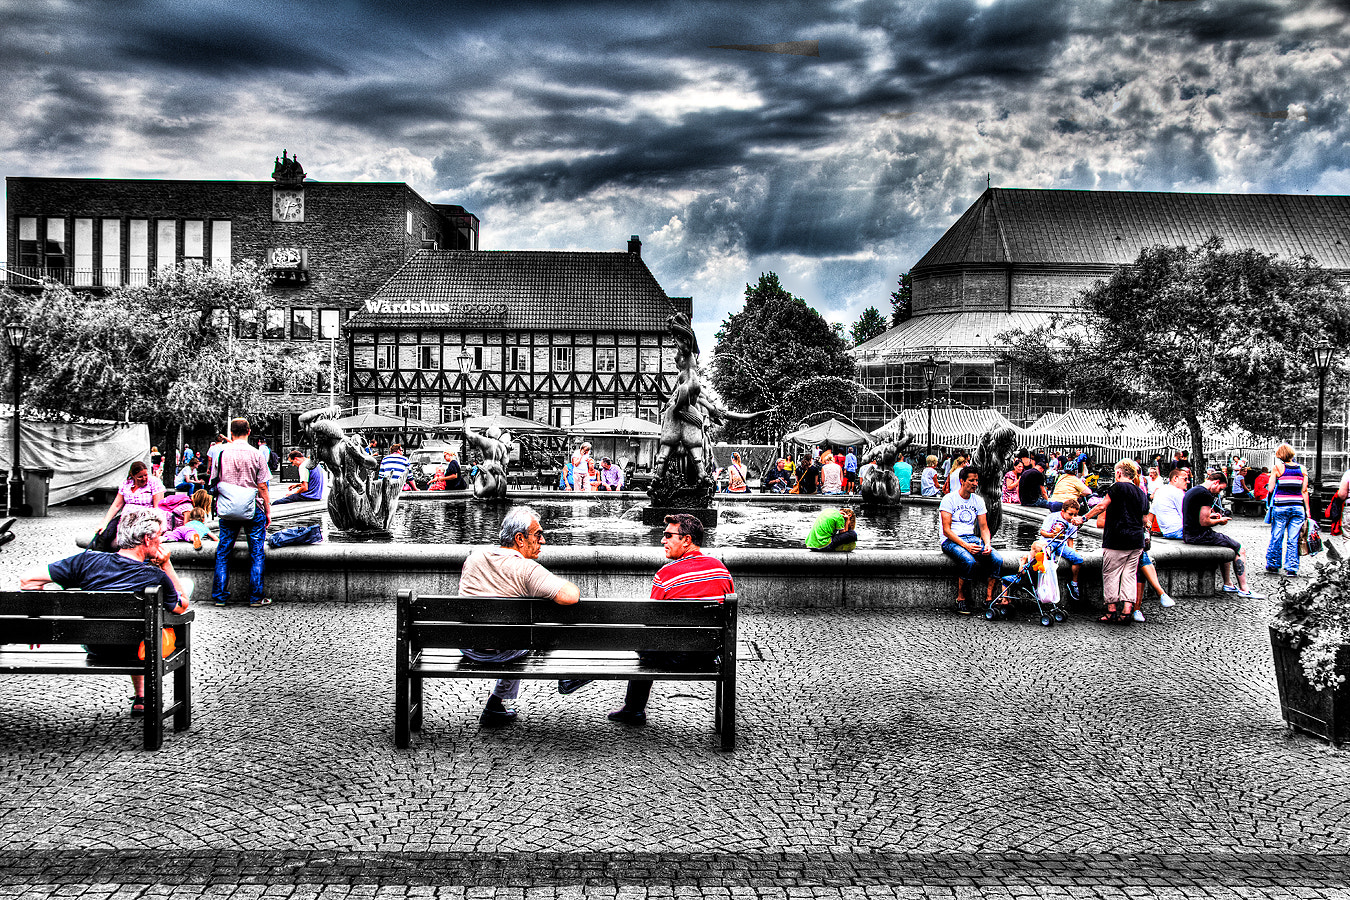 Photograph Summer in the city by Christer Häggqvist on 500px